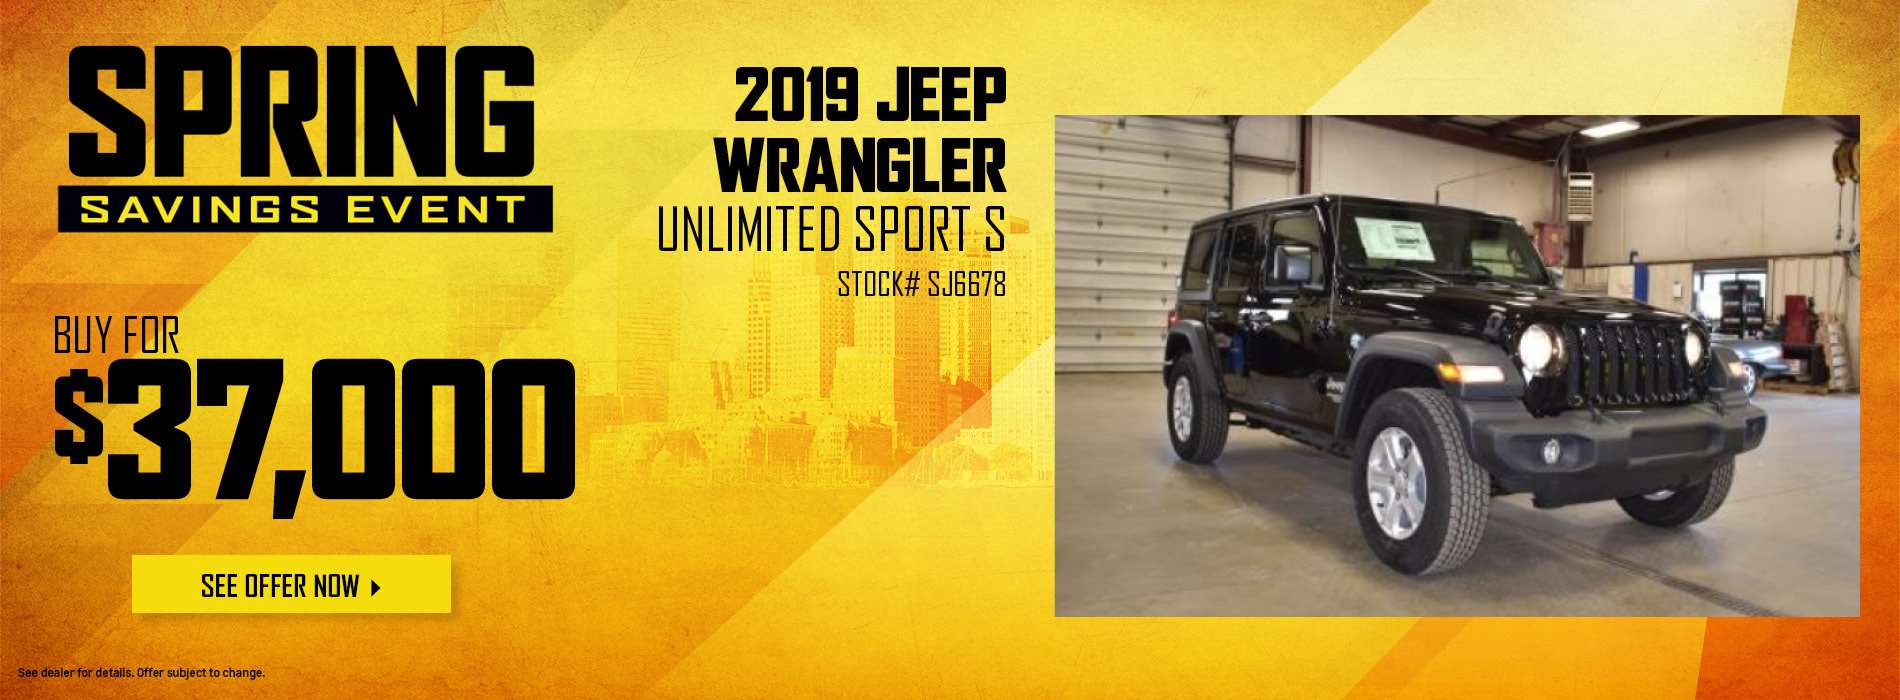 WranglerSport3